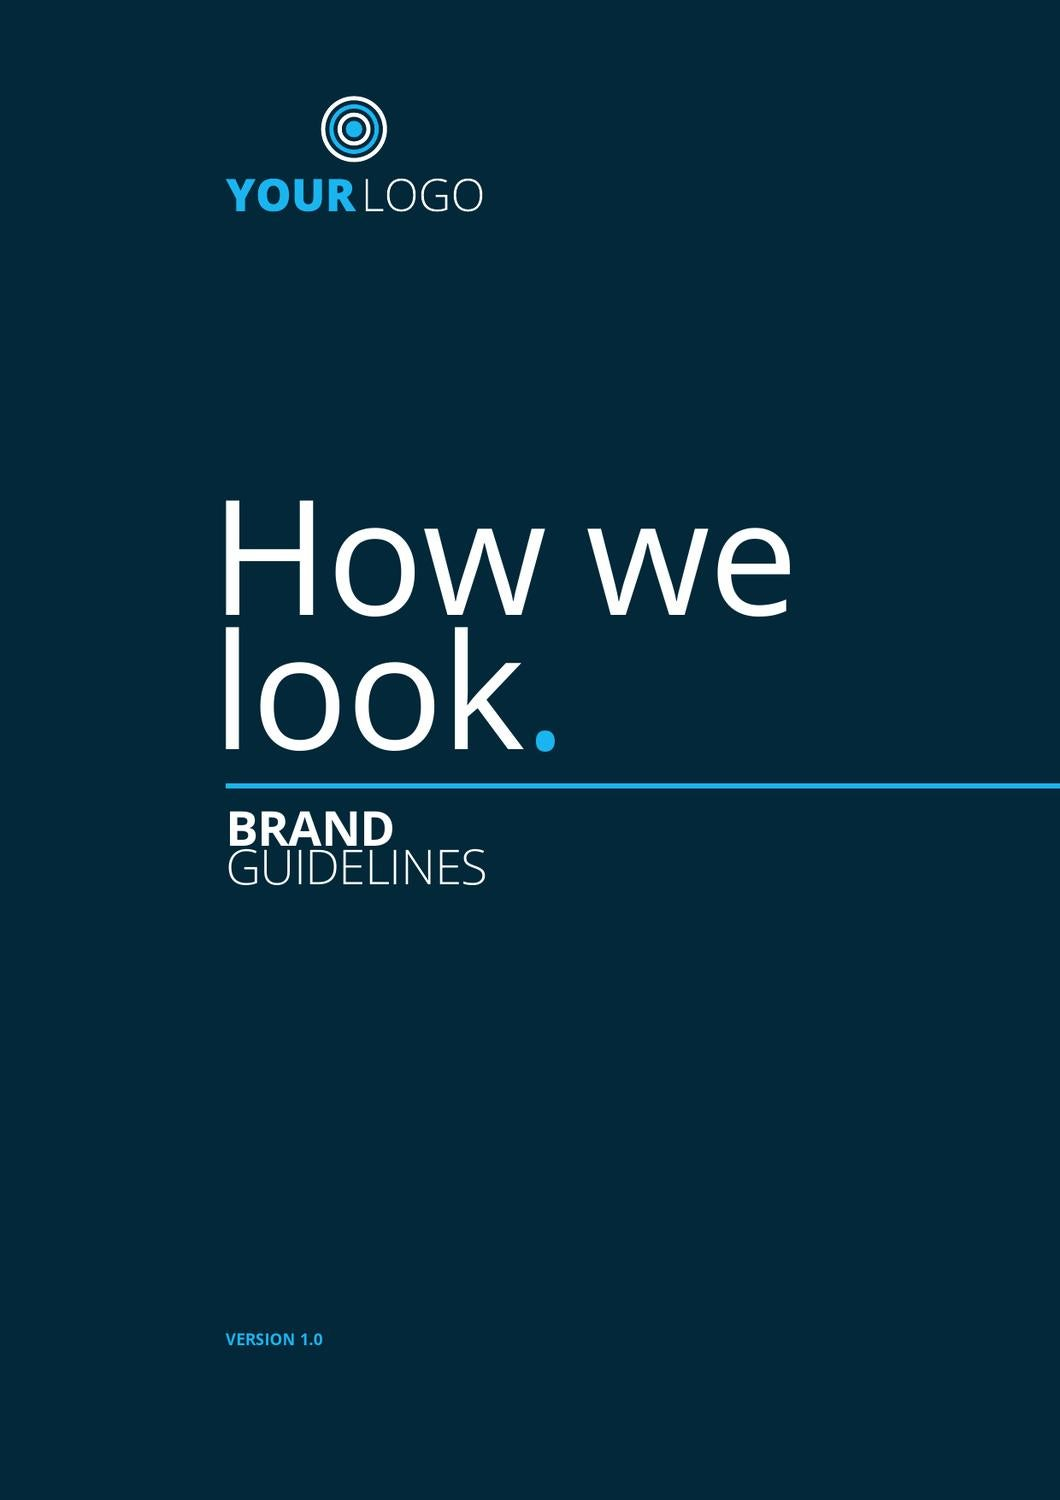 How We Look - Brand Guidelines Demo